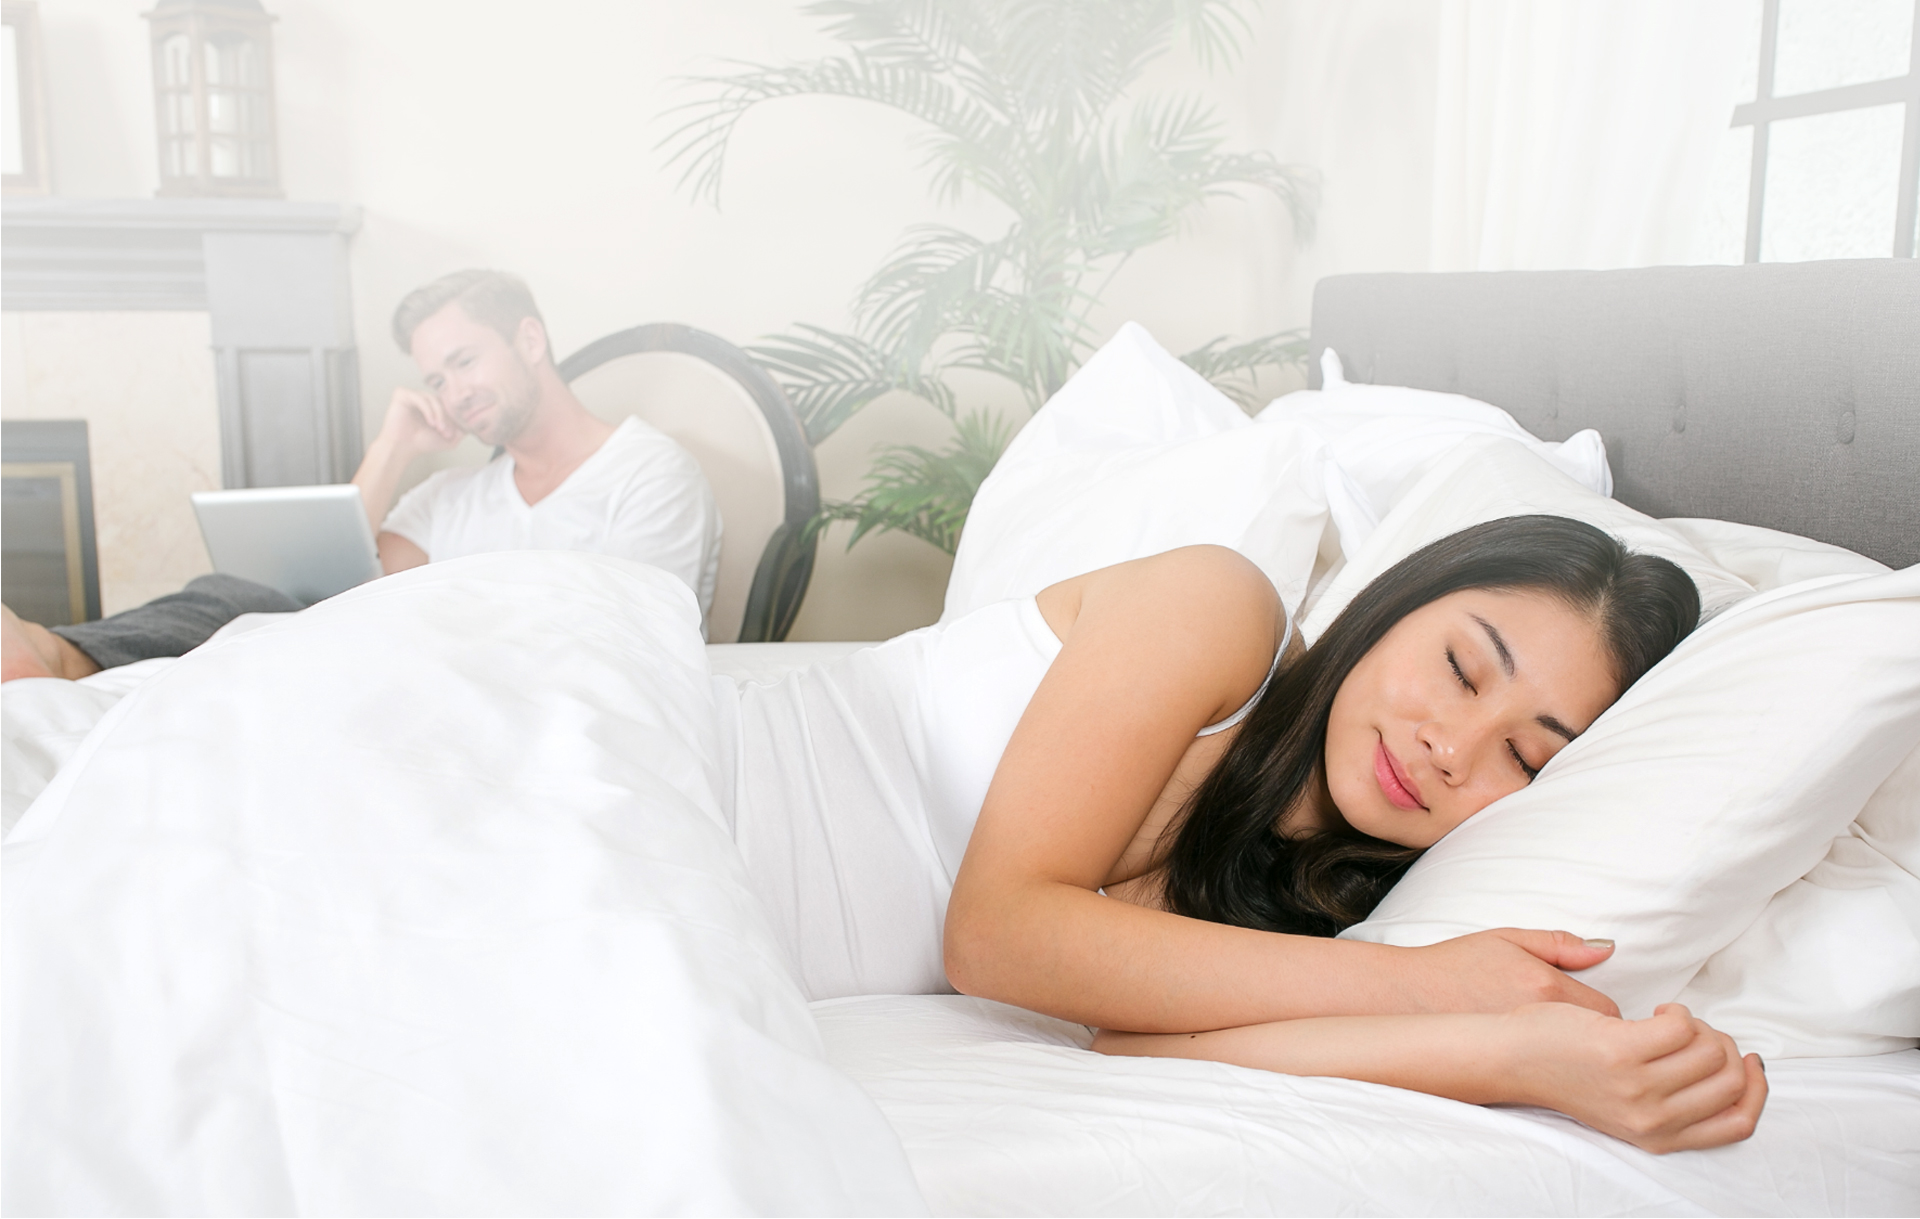 woman sleeping peacefully in bed, man reading beside bed